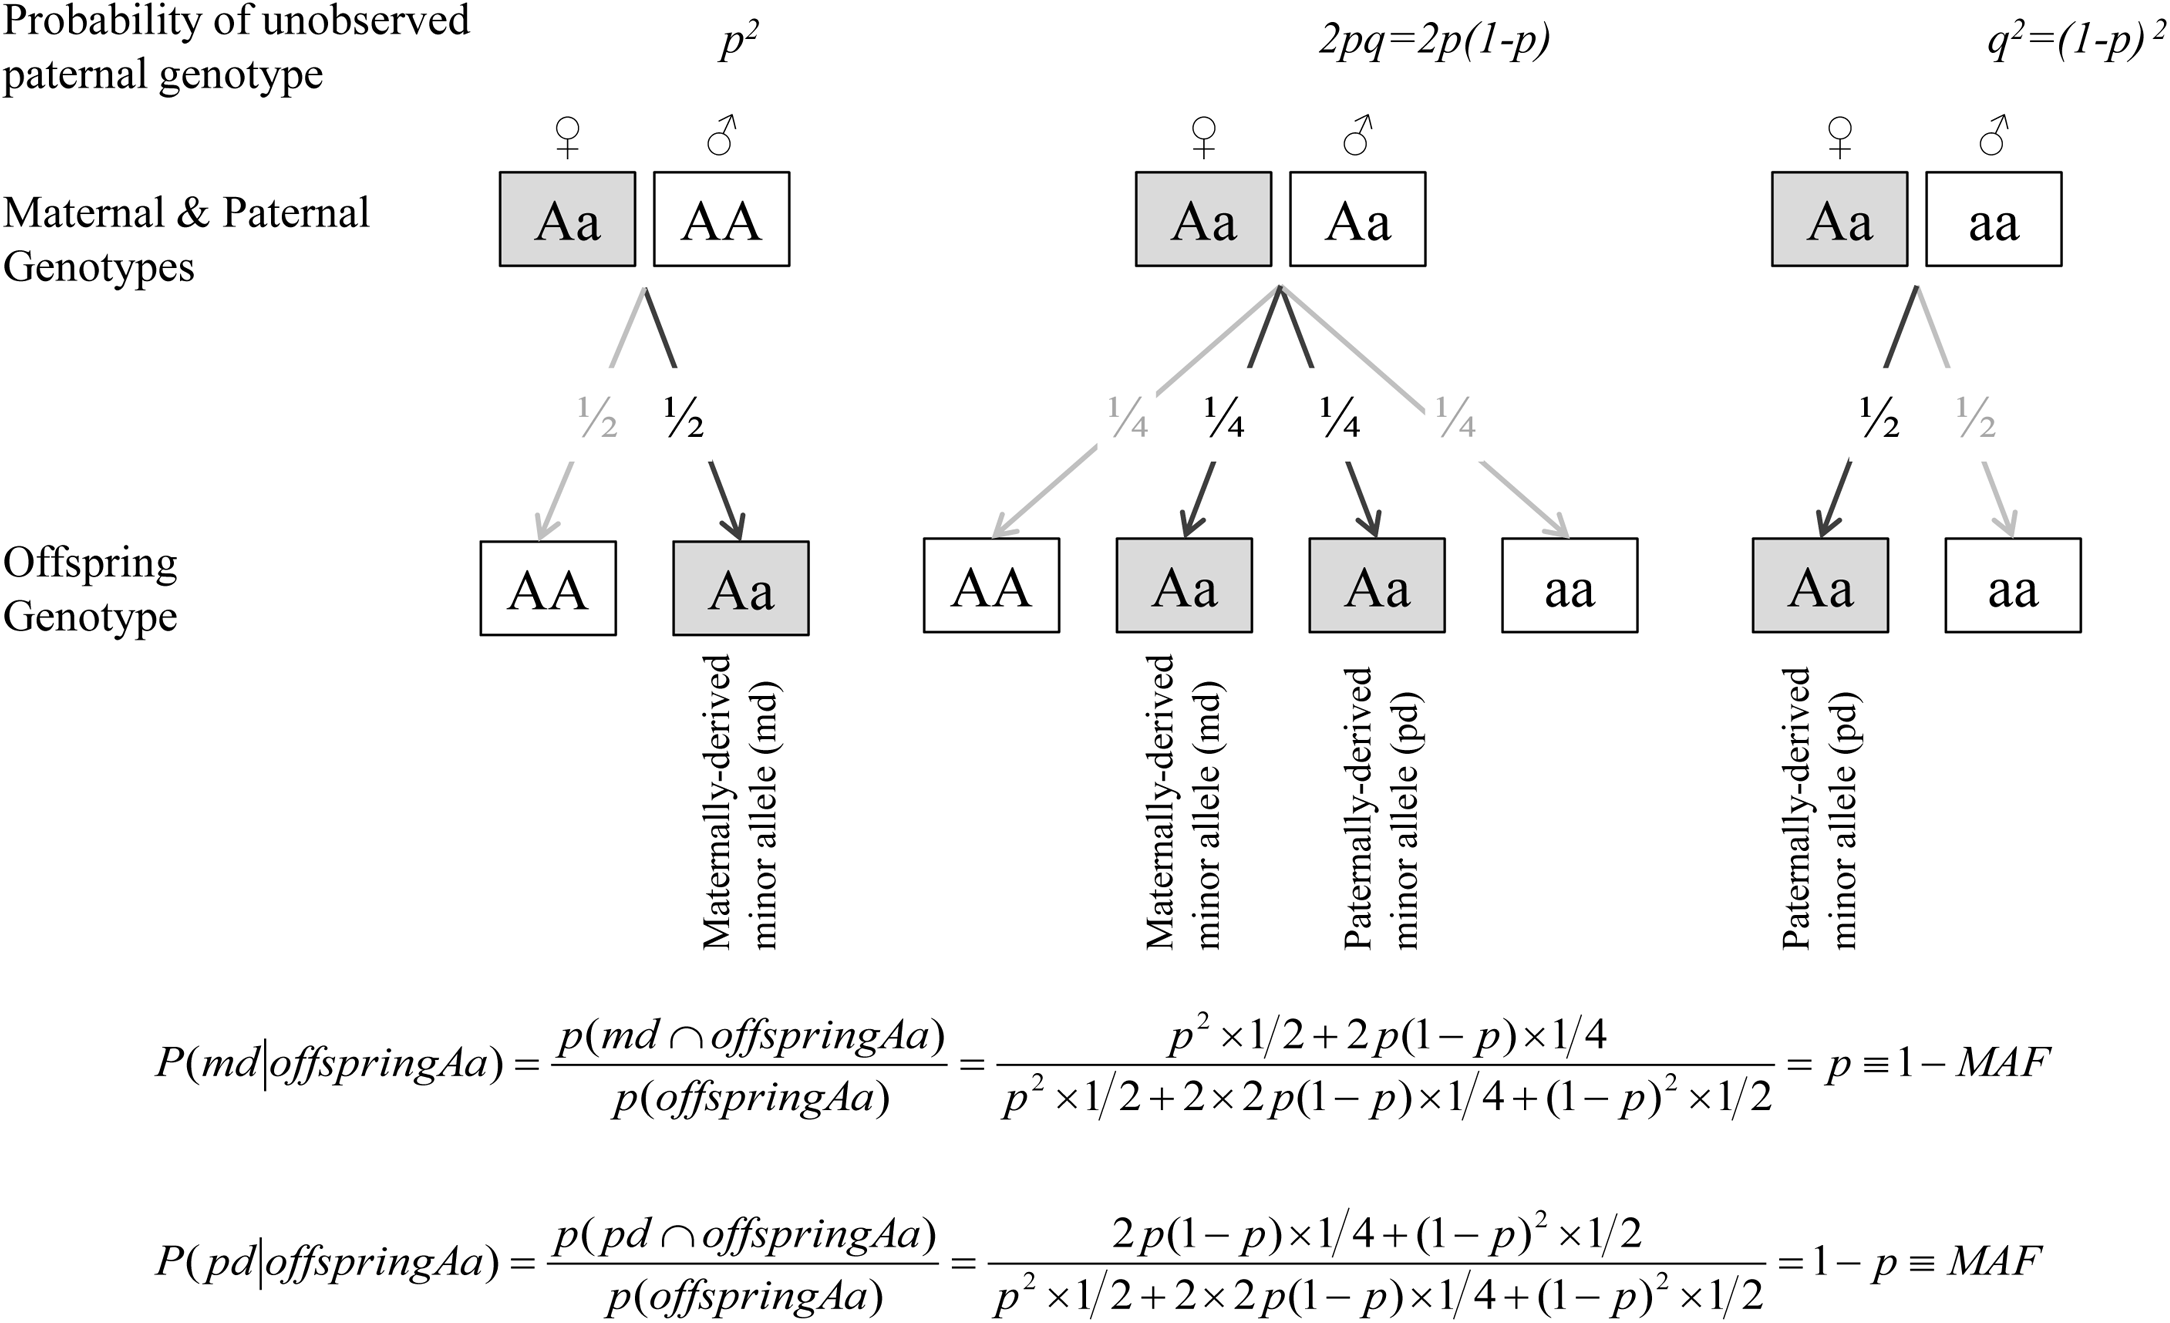 Estimated dosage of maternally- and paternally-derived minor allele indicators for heterozygous (Aa) mothers-offspring pairs.